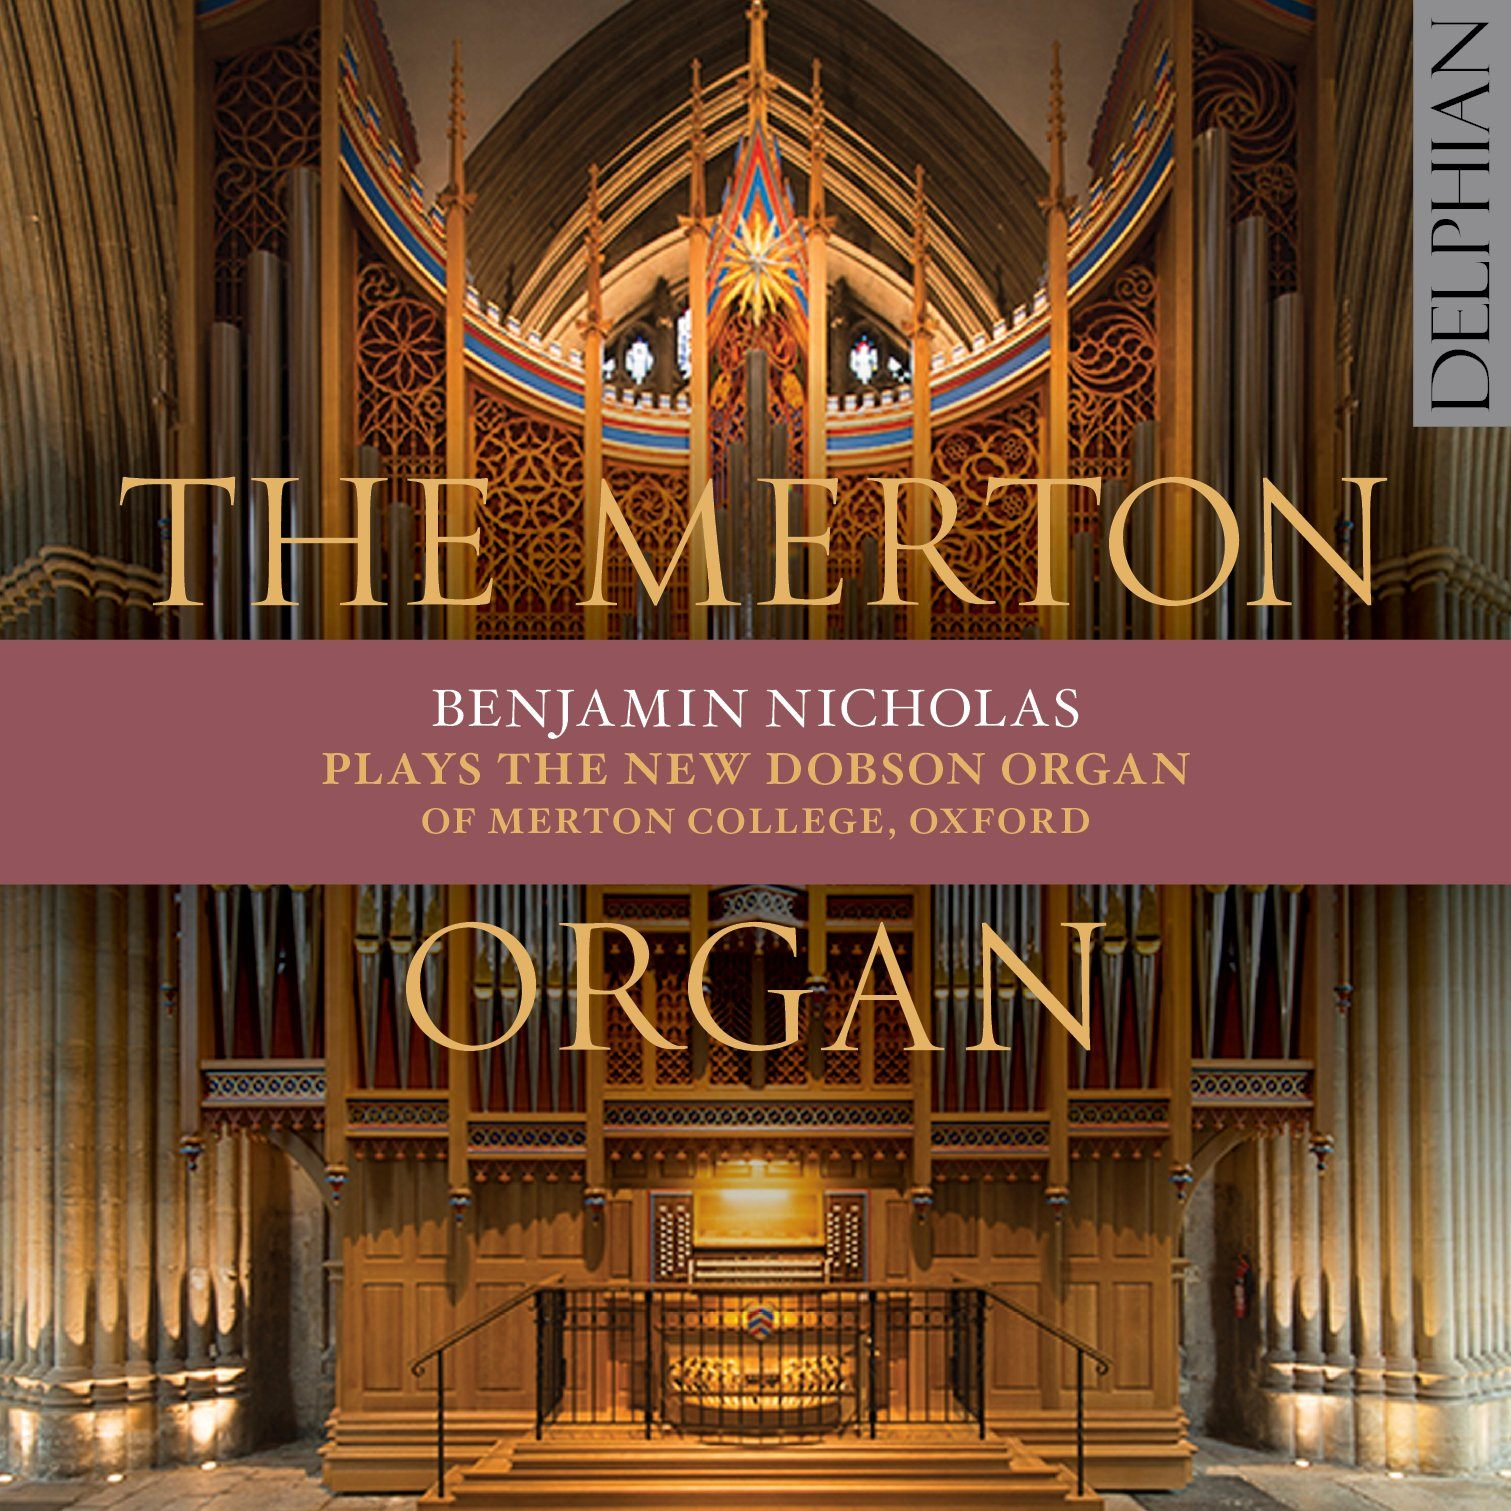 The Merton Organ: the new Dobson organ of Merton College, Oxford CD Delphian Records